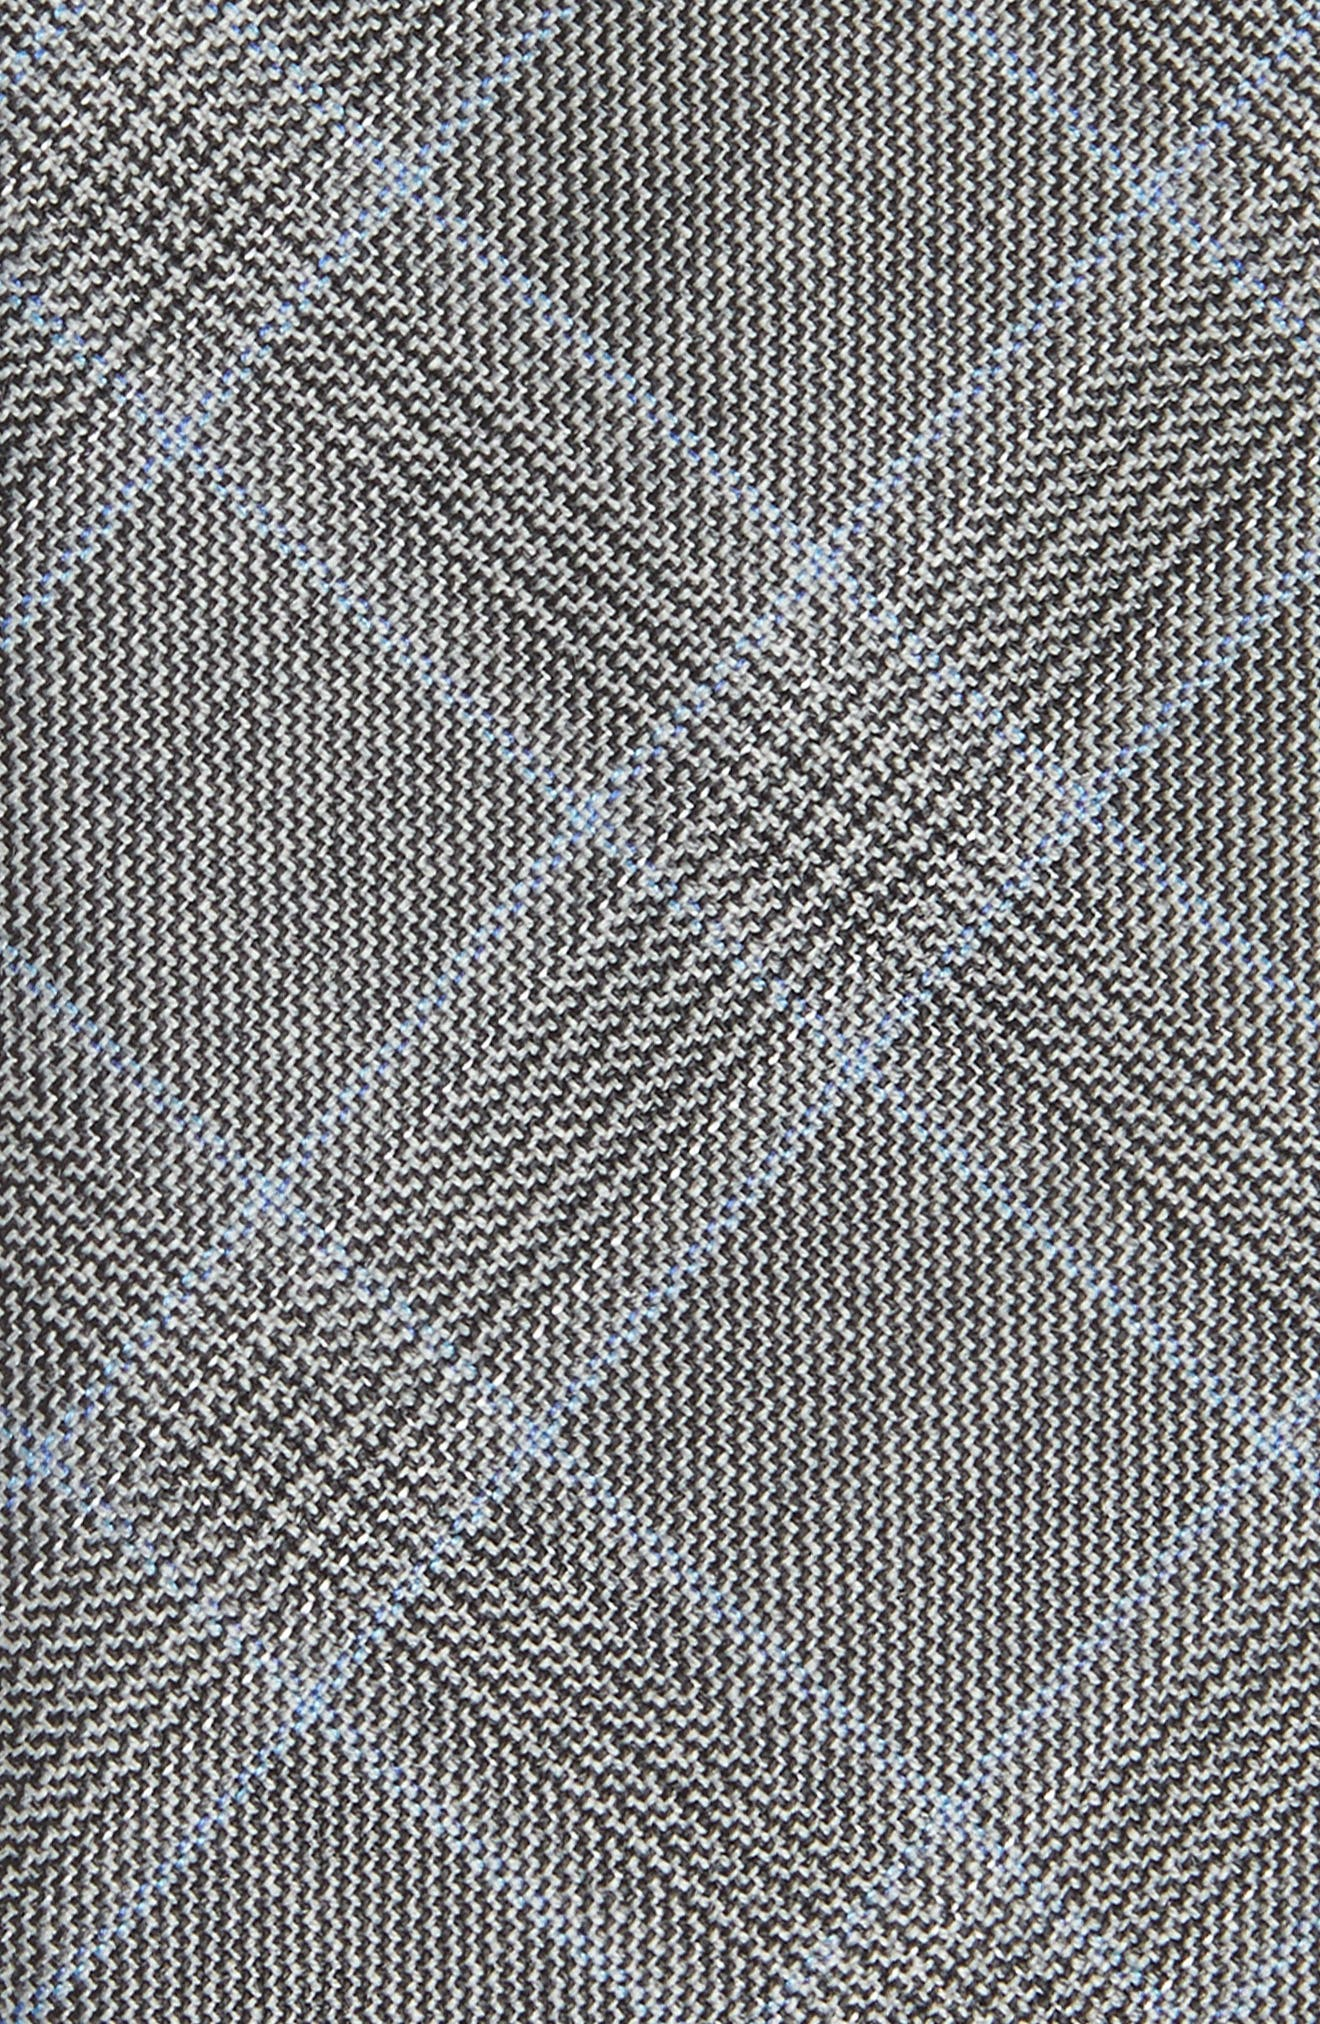 Plaid Wool Tie,                             Alternate thumbnail 2, color,                             072